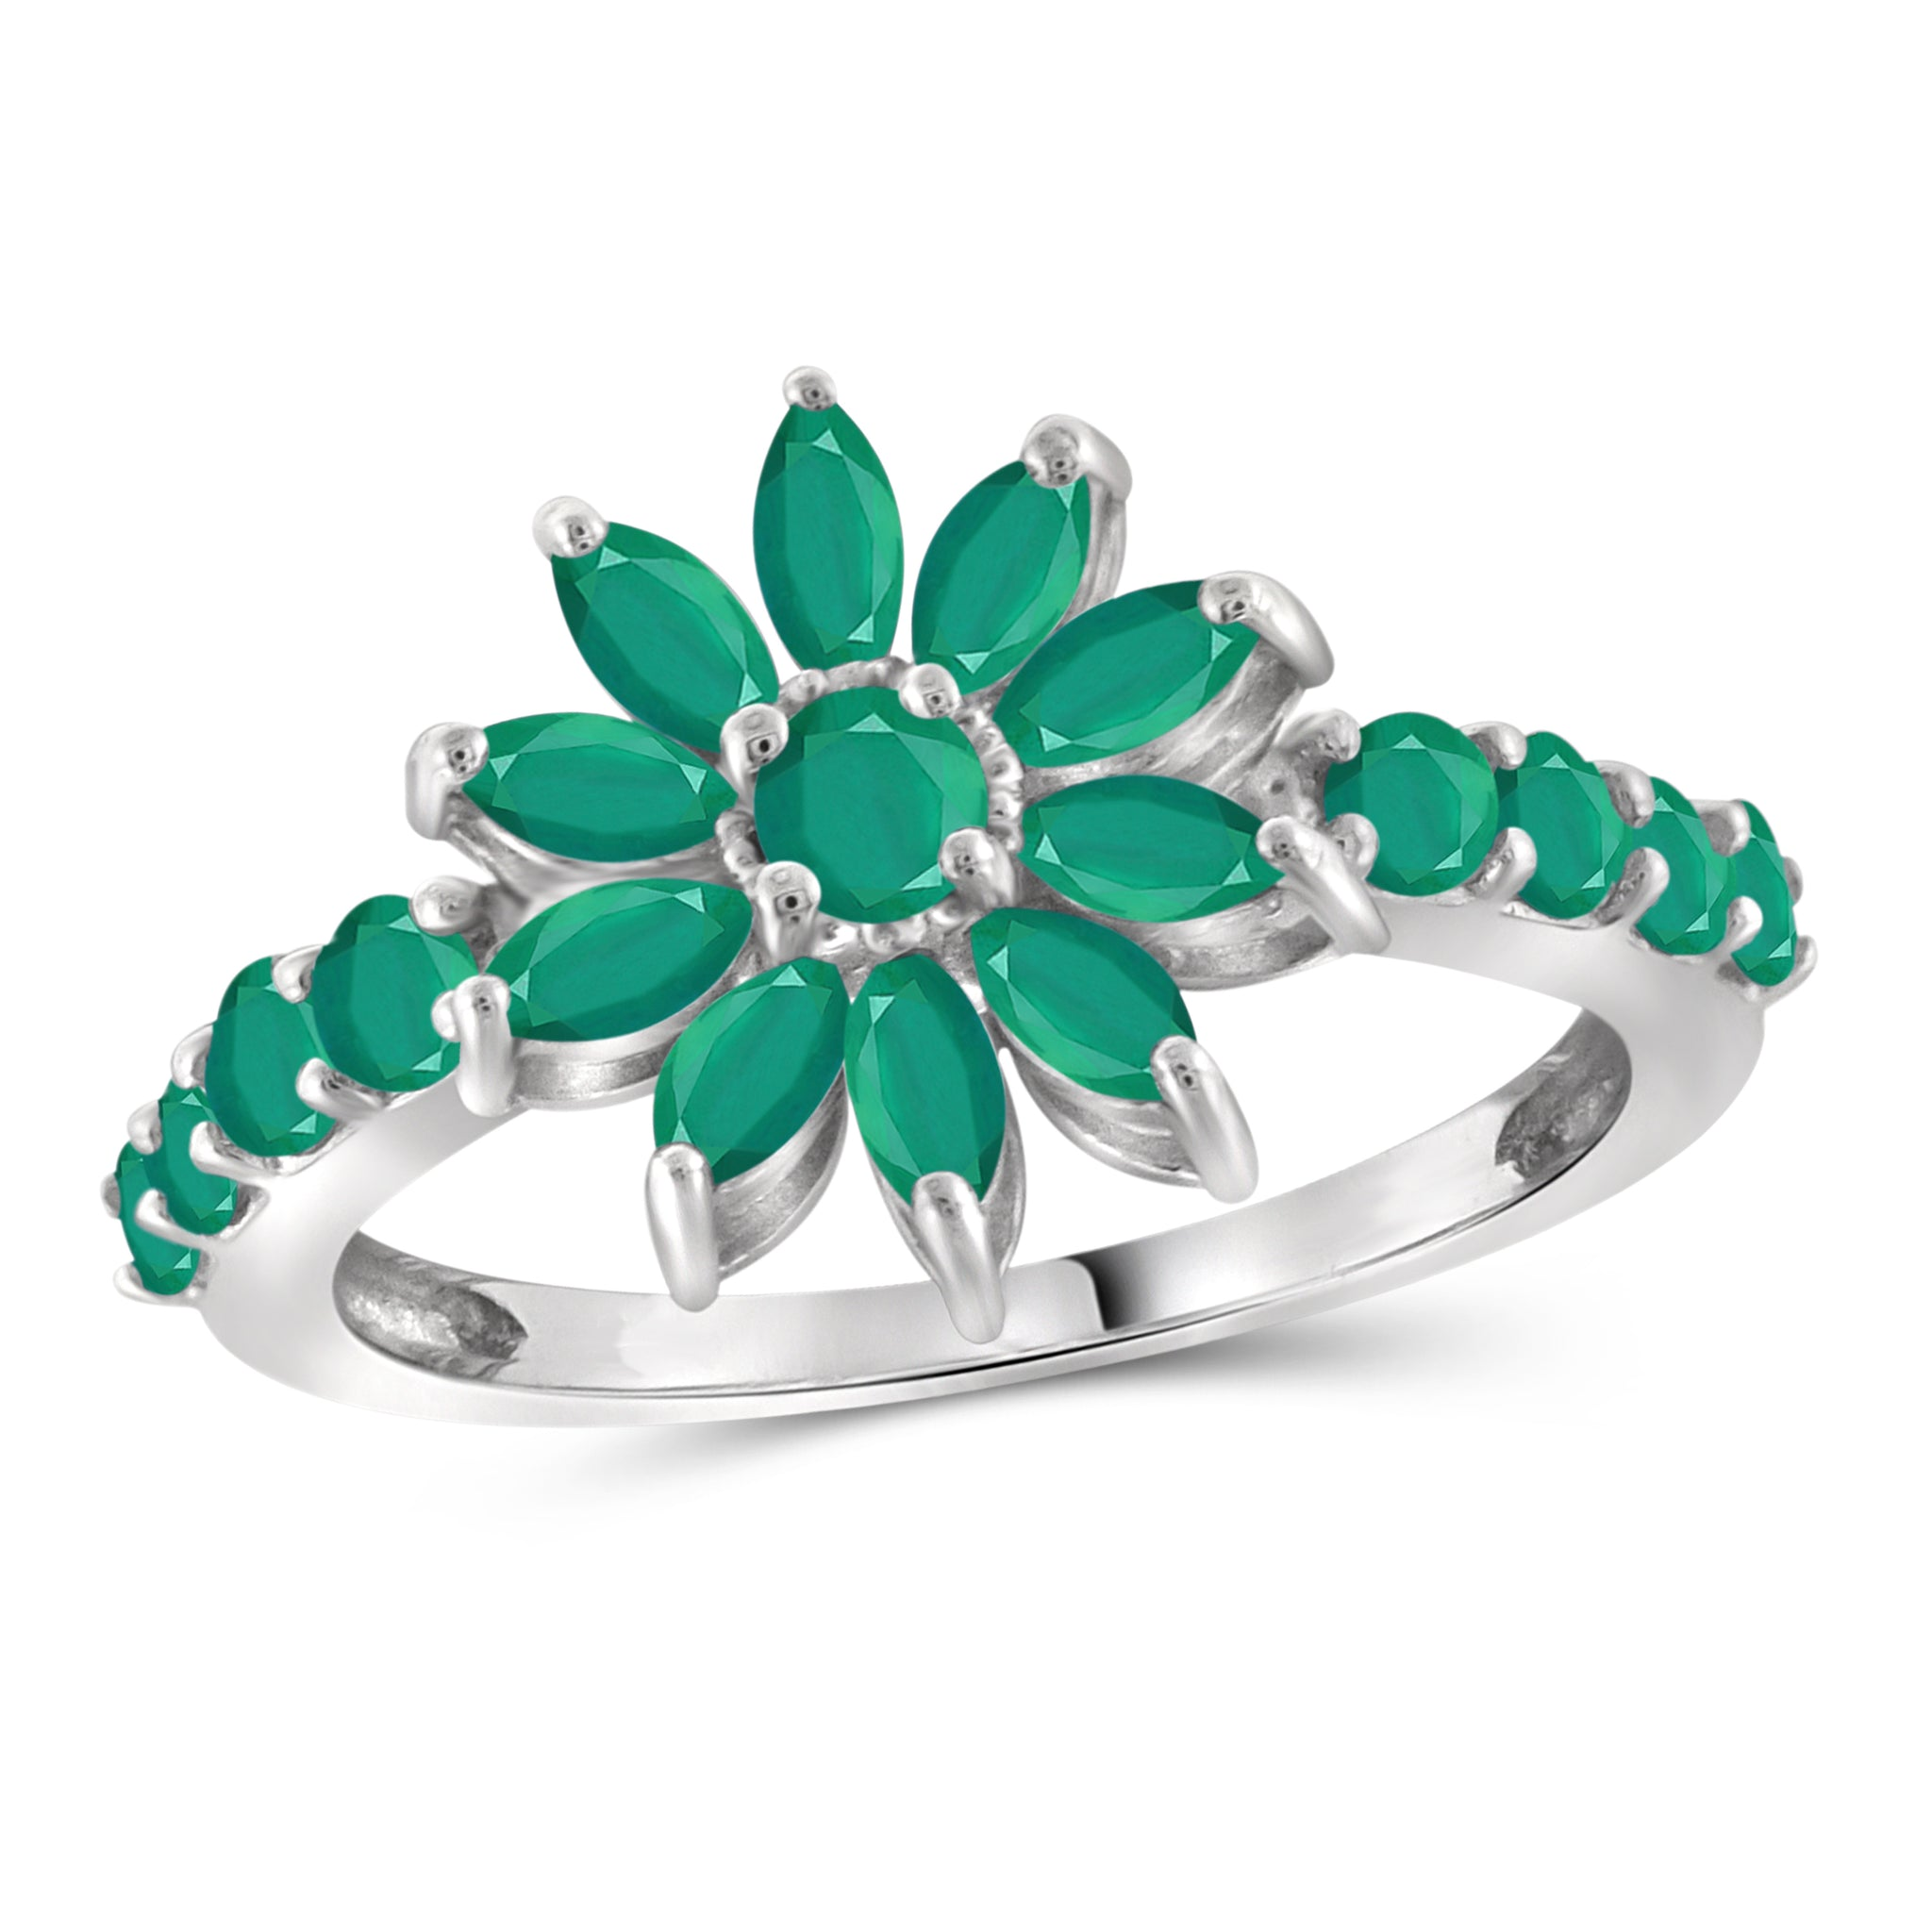 JewelersClub 1.55 Carat T.G.W. Emerald Sterling Silver Flower Ring - Assorted Colors